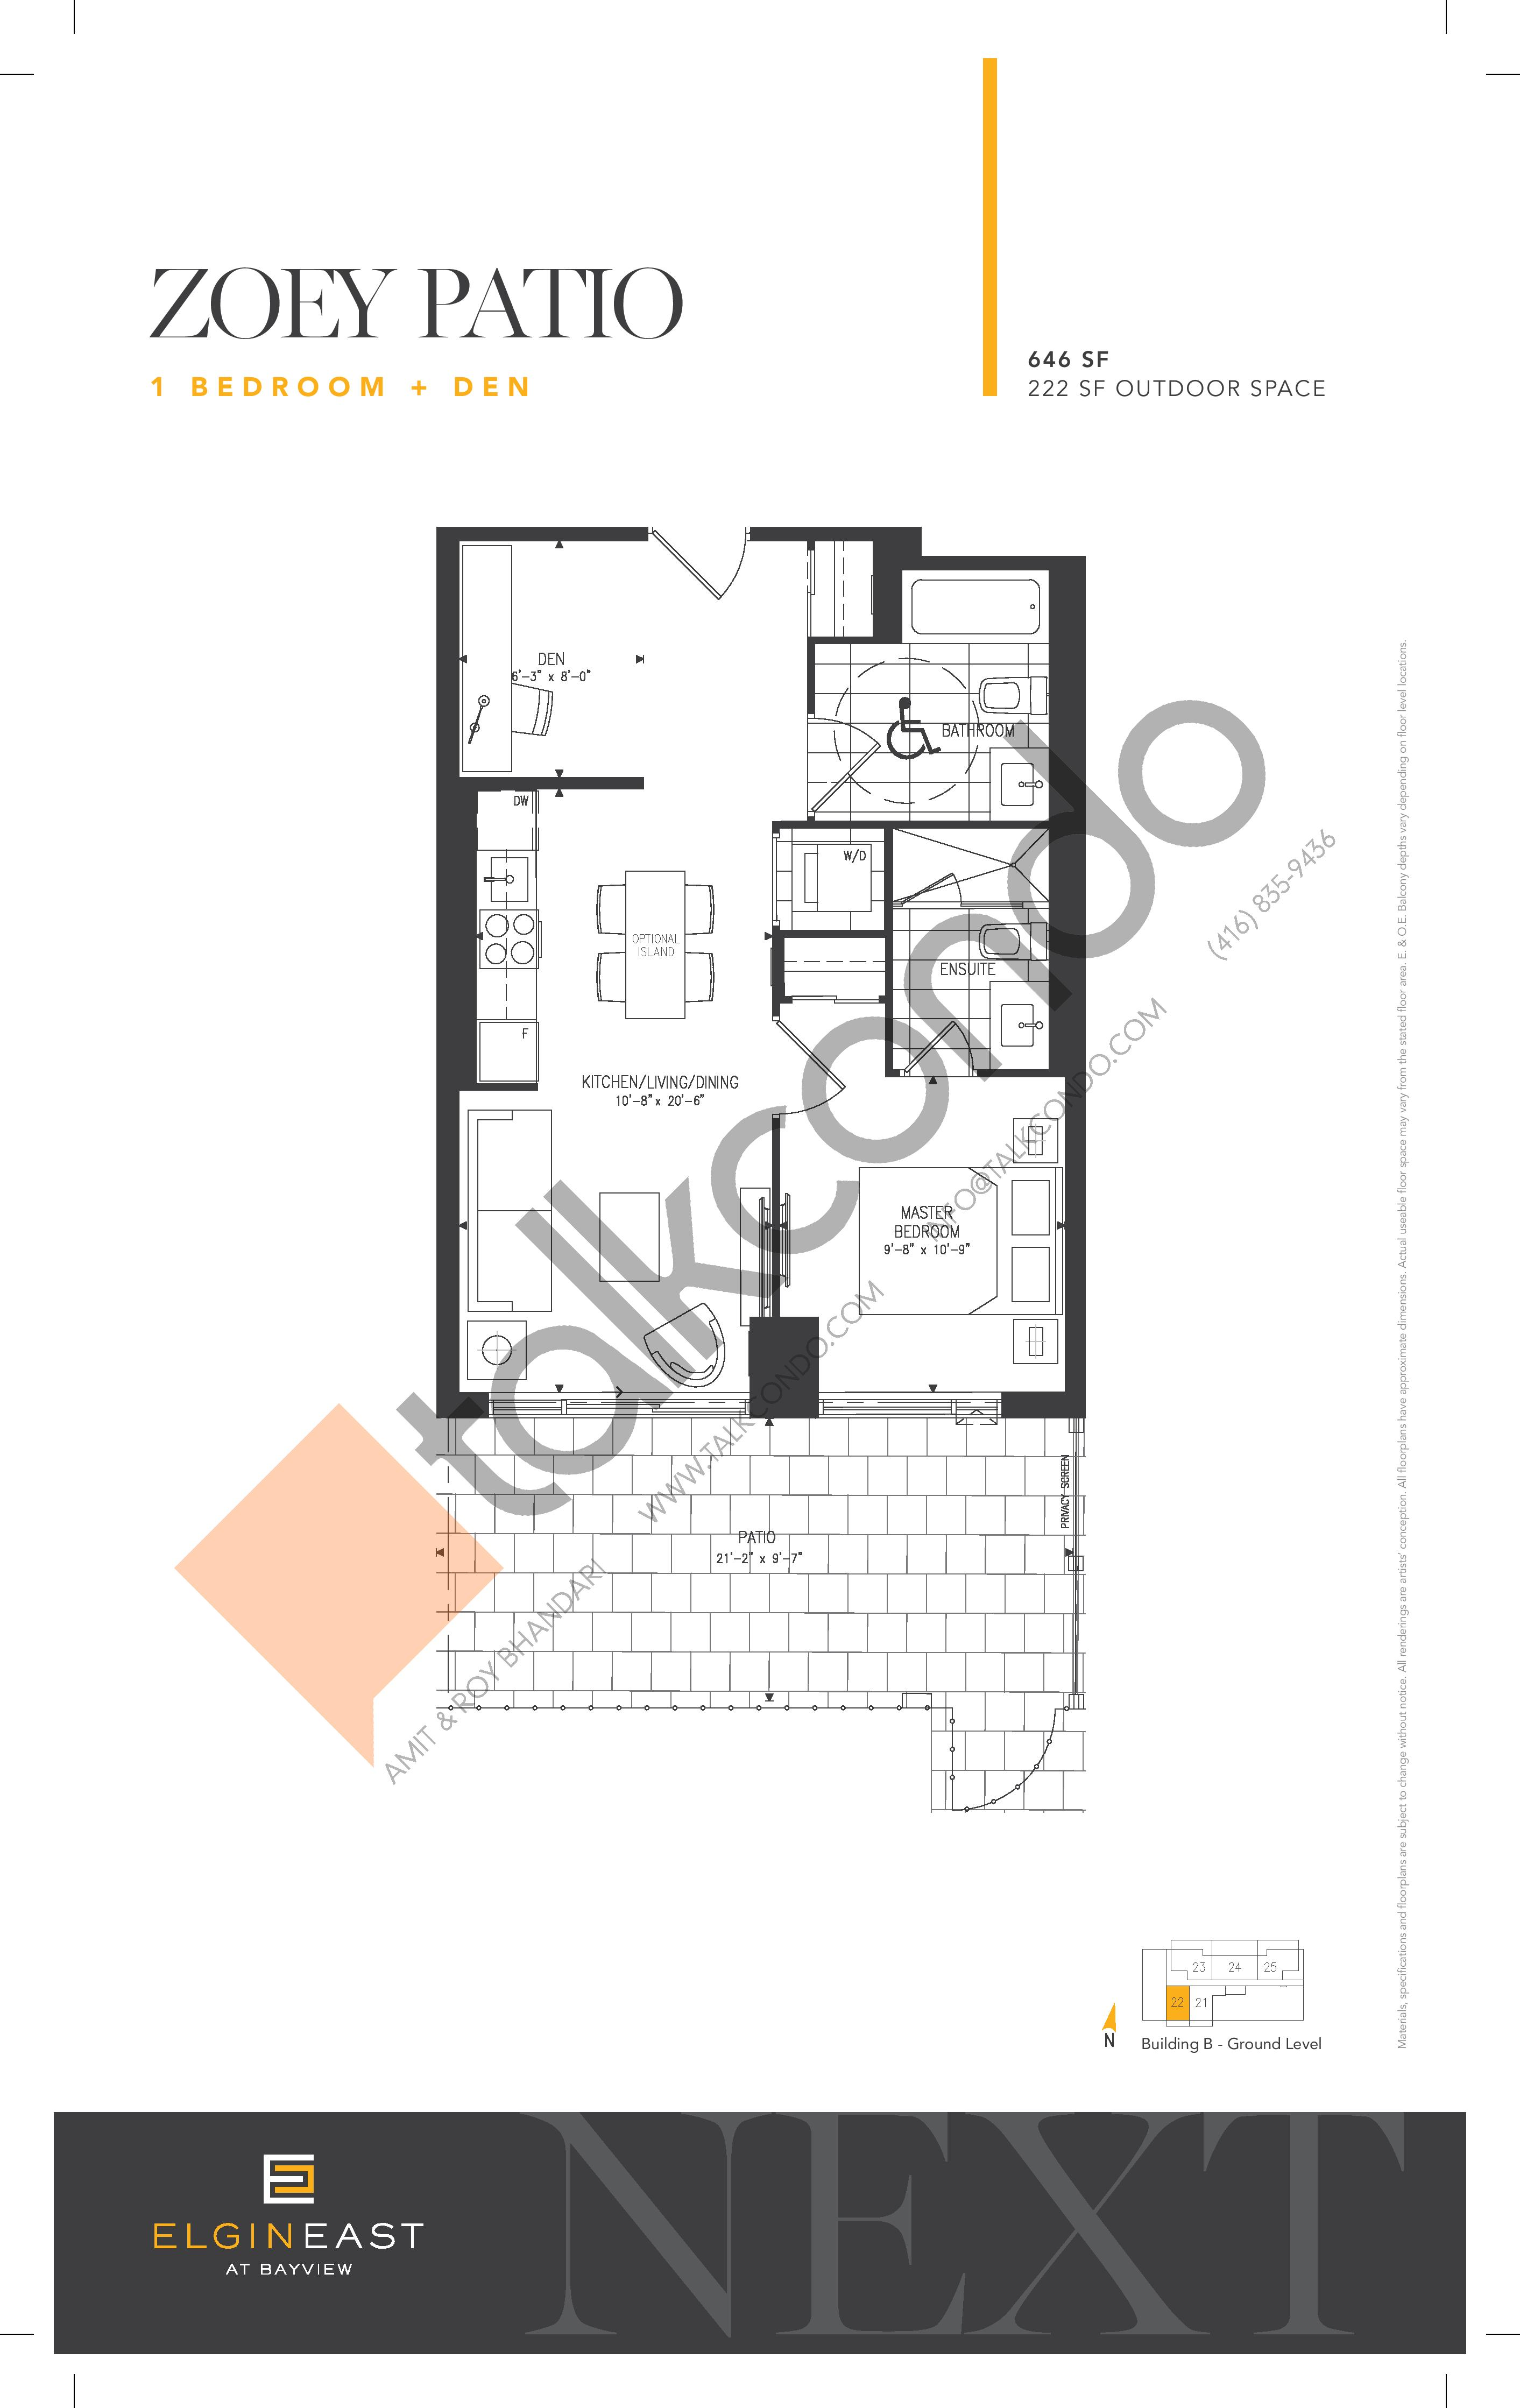 Zoey Patio Floor Plan at NEXT - Elgin East Phase 2 Condos - 646 sq.ft